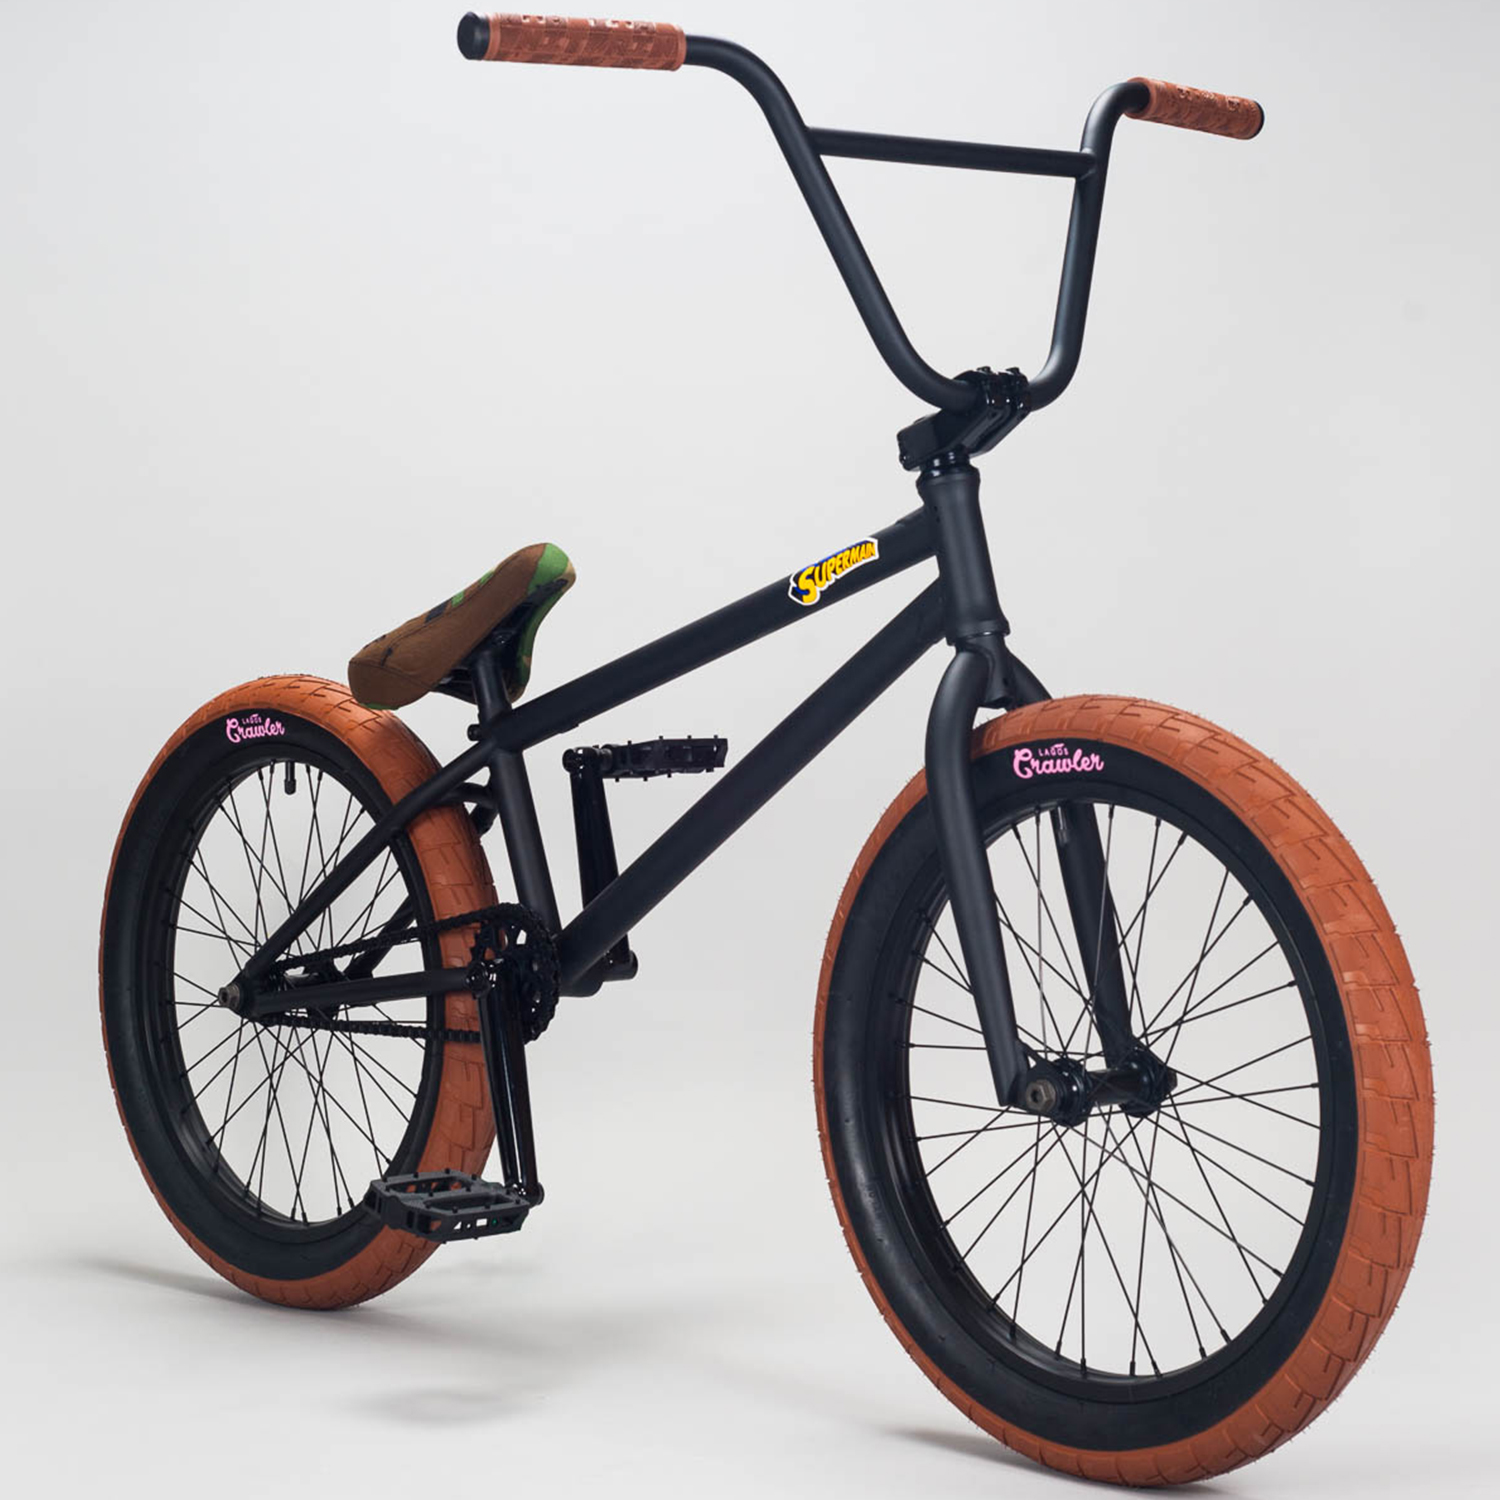 mafiabikes supermain 20 zoll bmx bike verschiedene. Black Bedroom Furniture Sets. Home Design Ideas